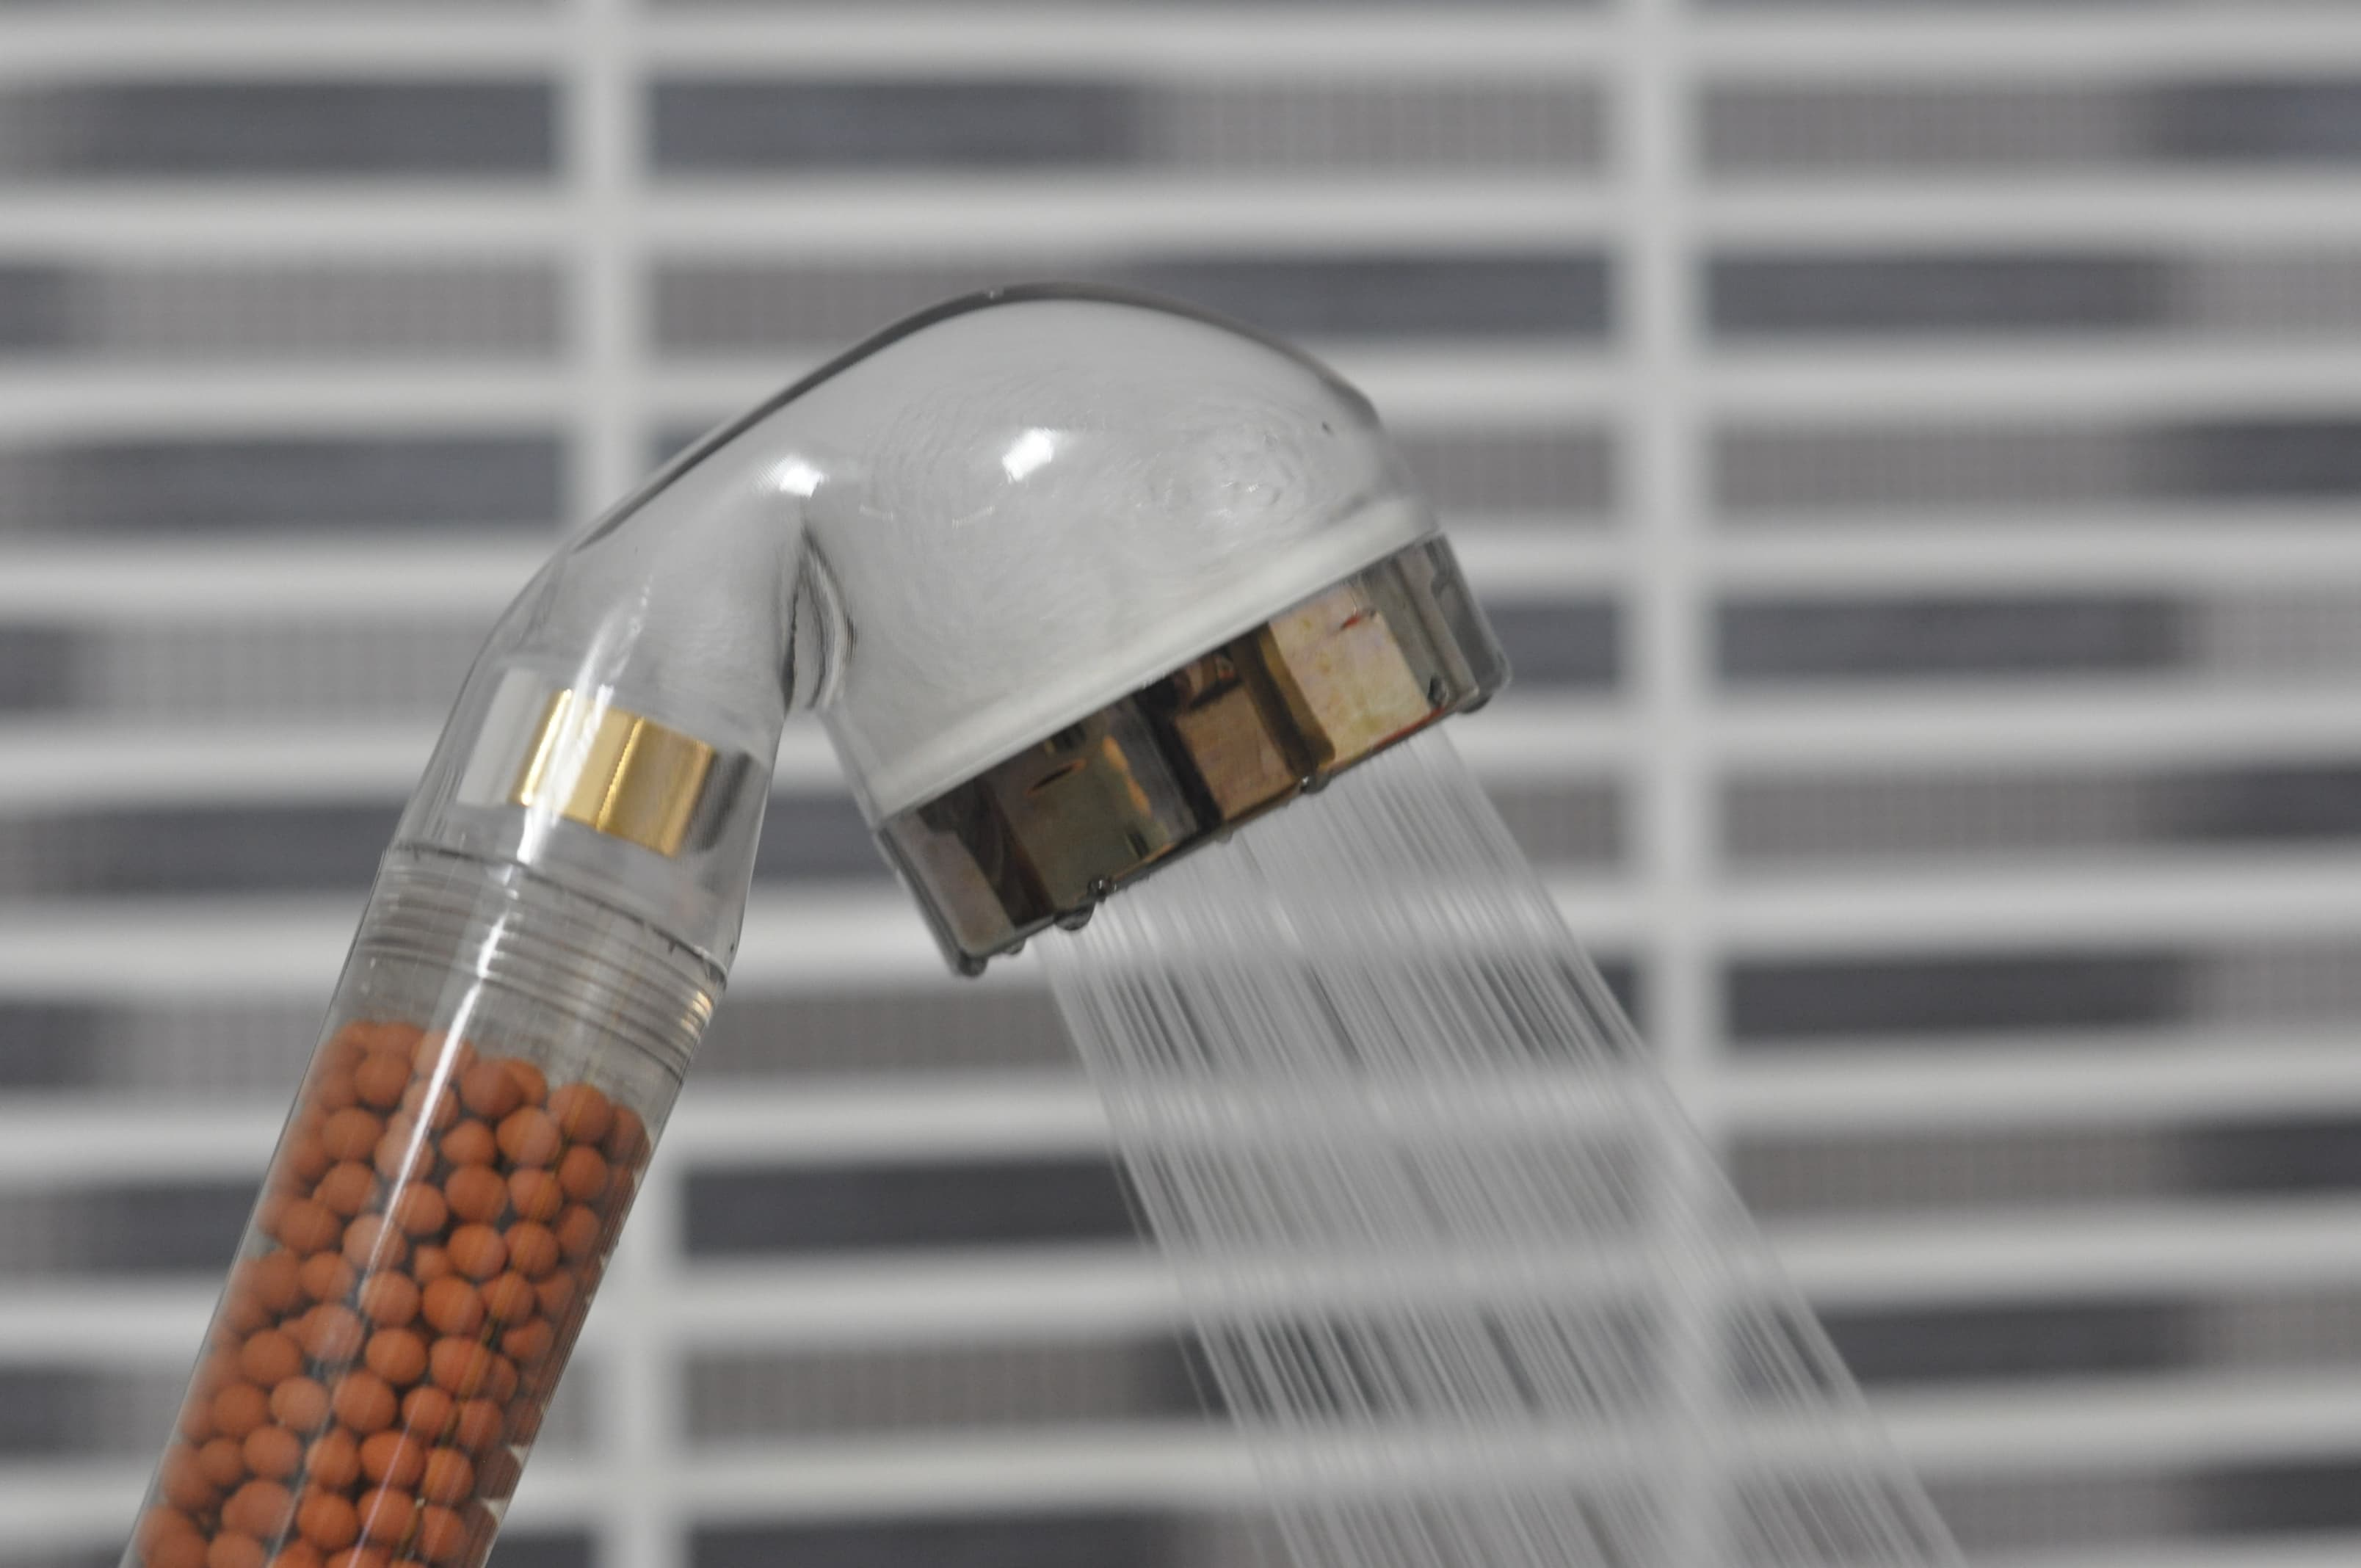 Care_Ae shower head _CS 500_